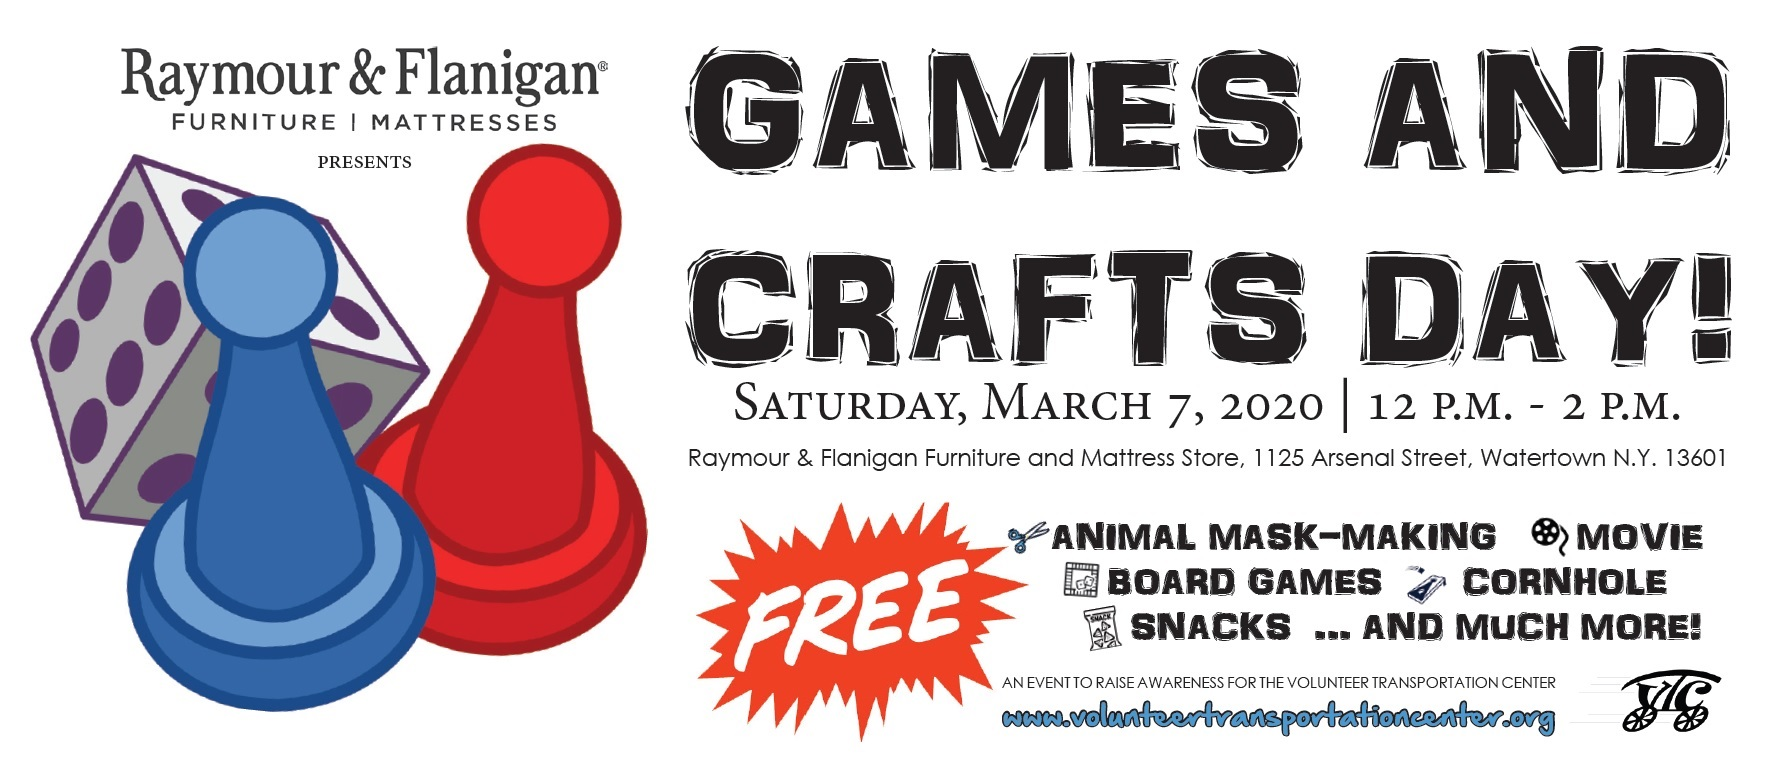 Raymour & Flanigan to Host Games and Crafts Day for VTC